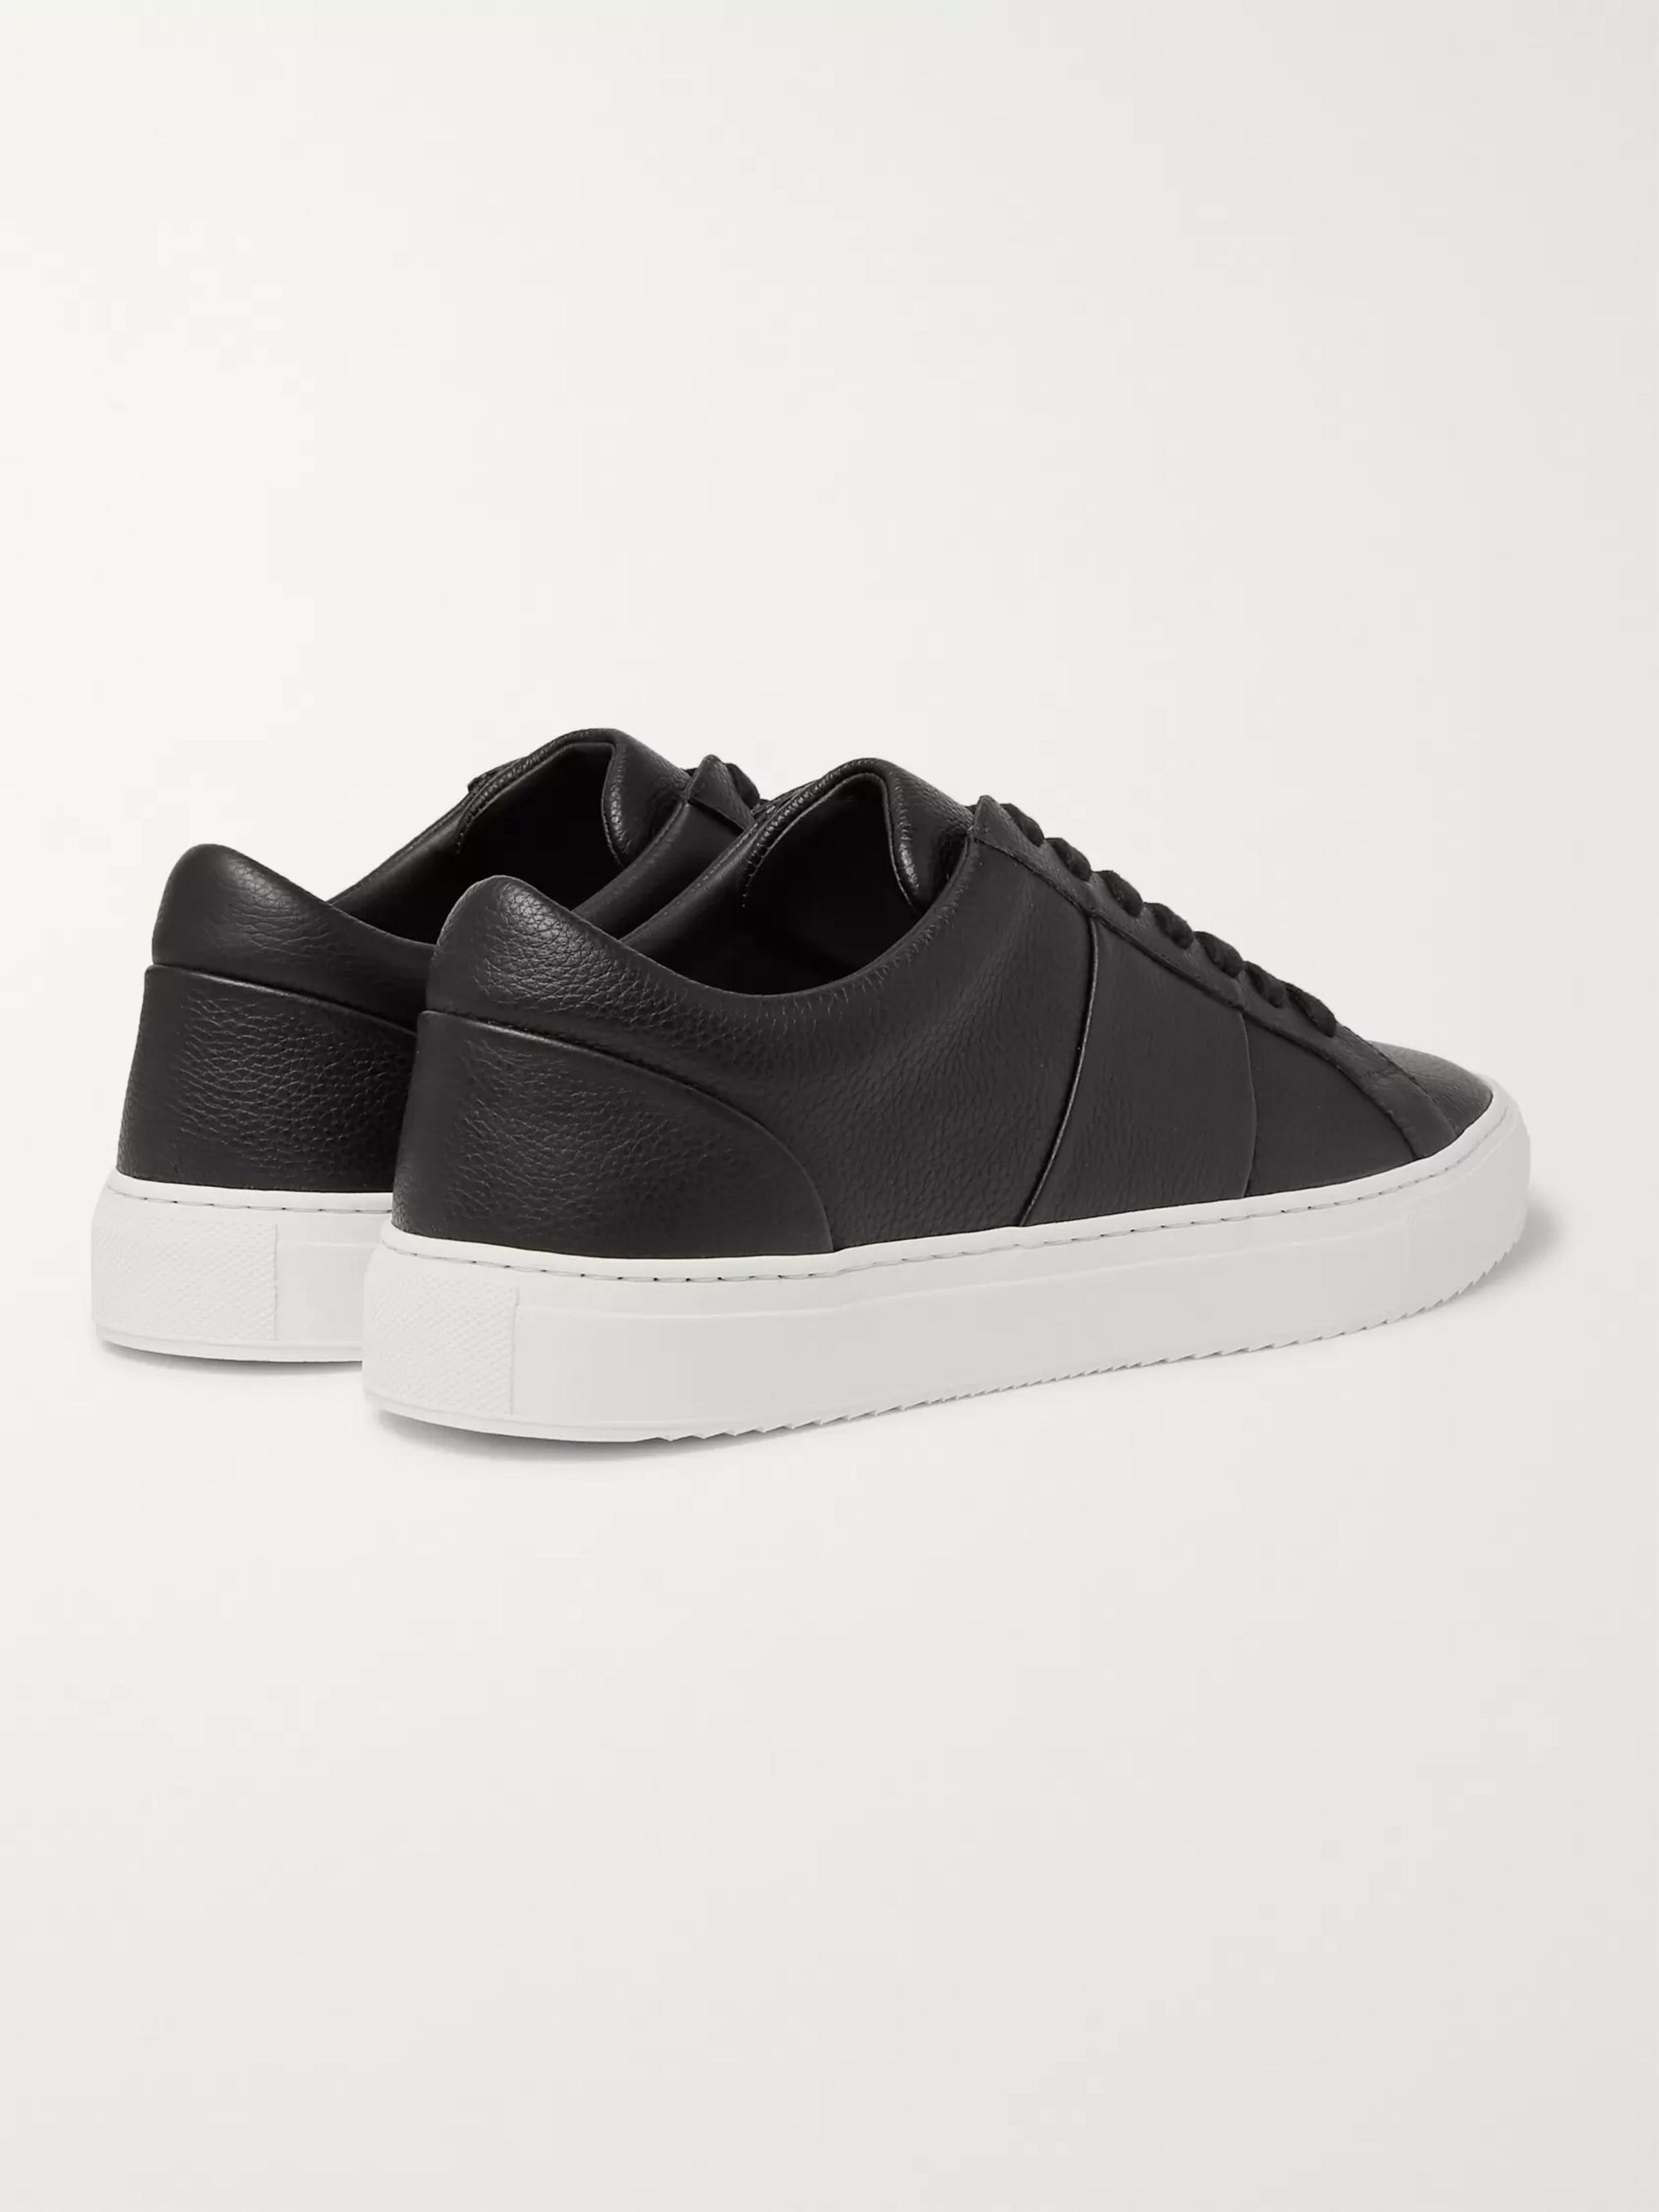 Mr P. Larry Leather Sneakers